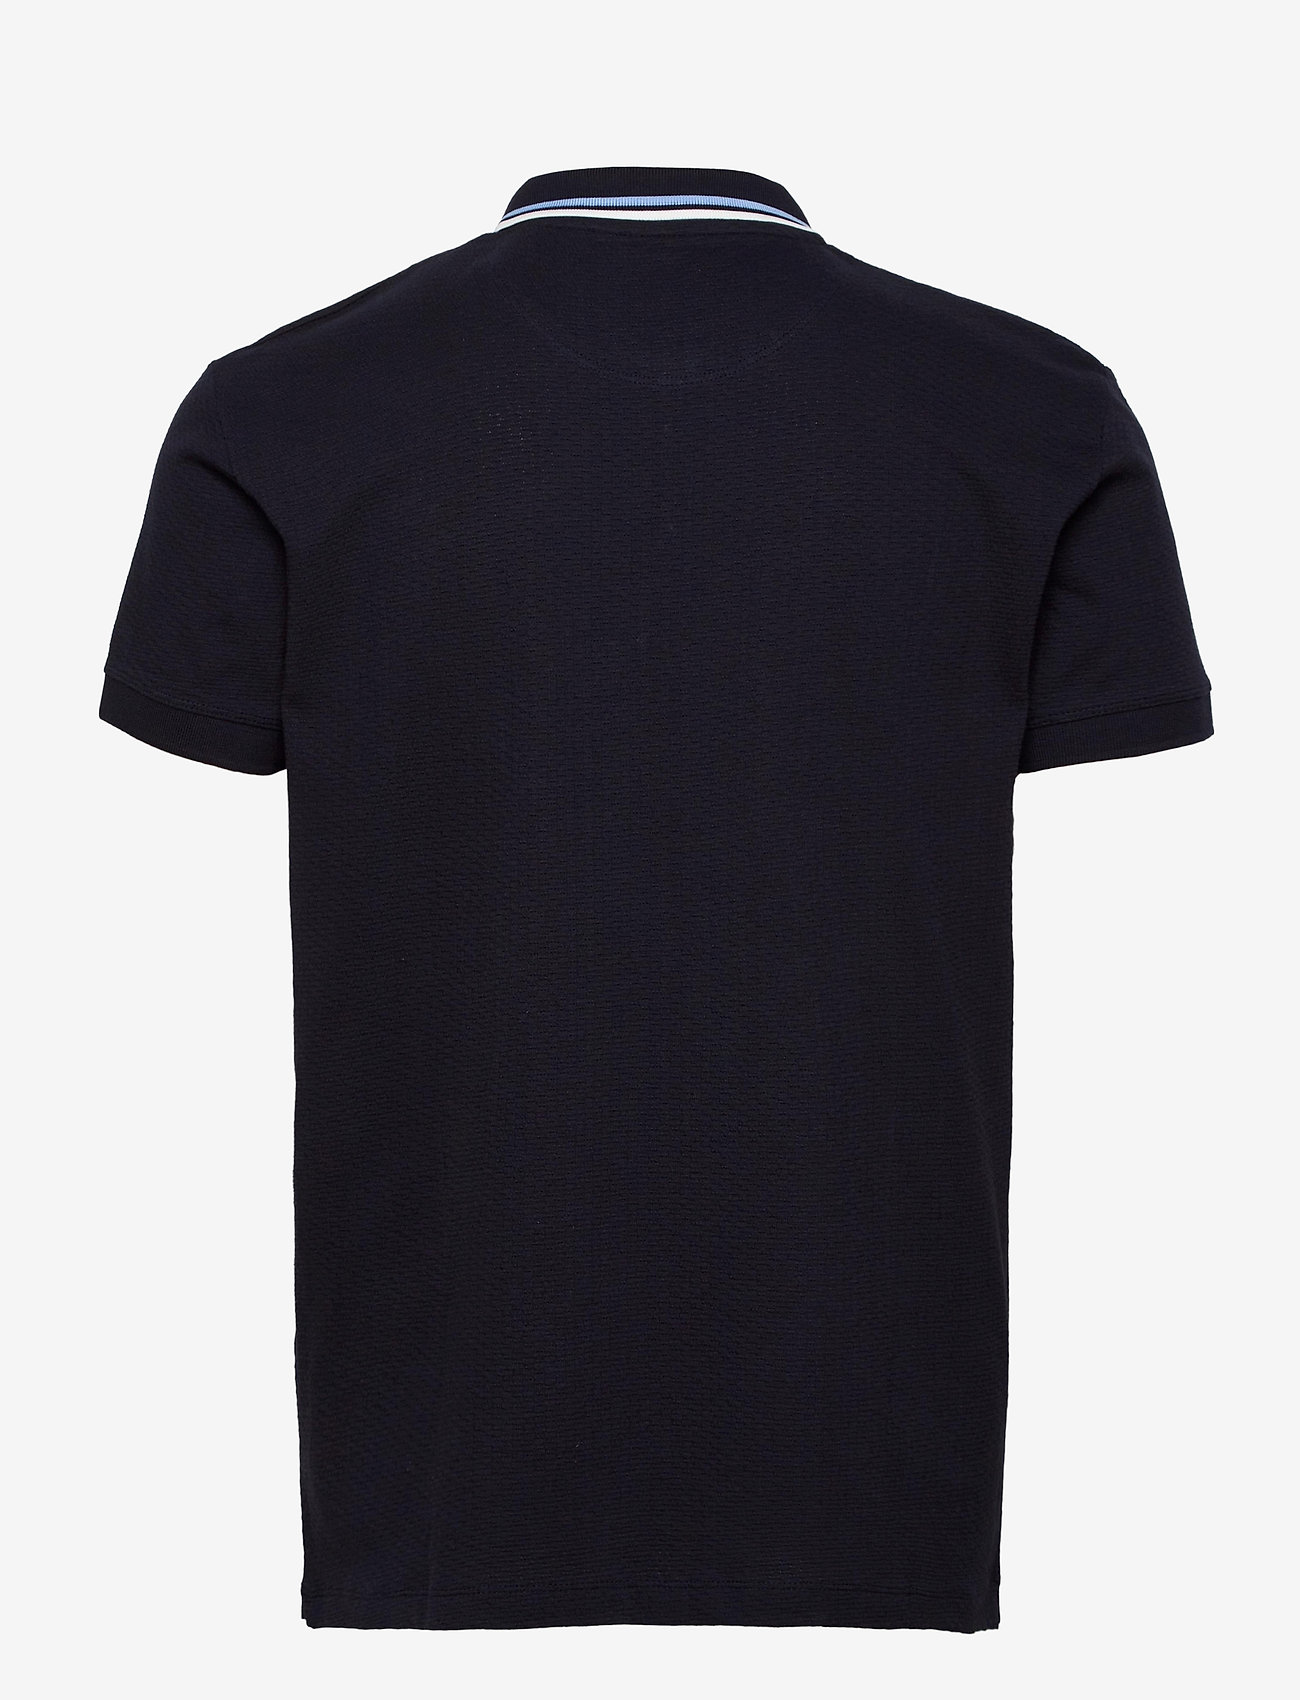 Esprit Casual - Polo shirts - basic t-shirts - navy - 1